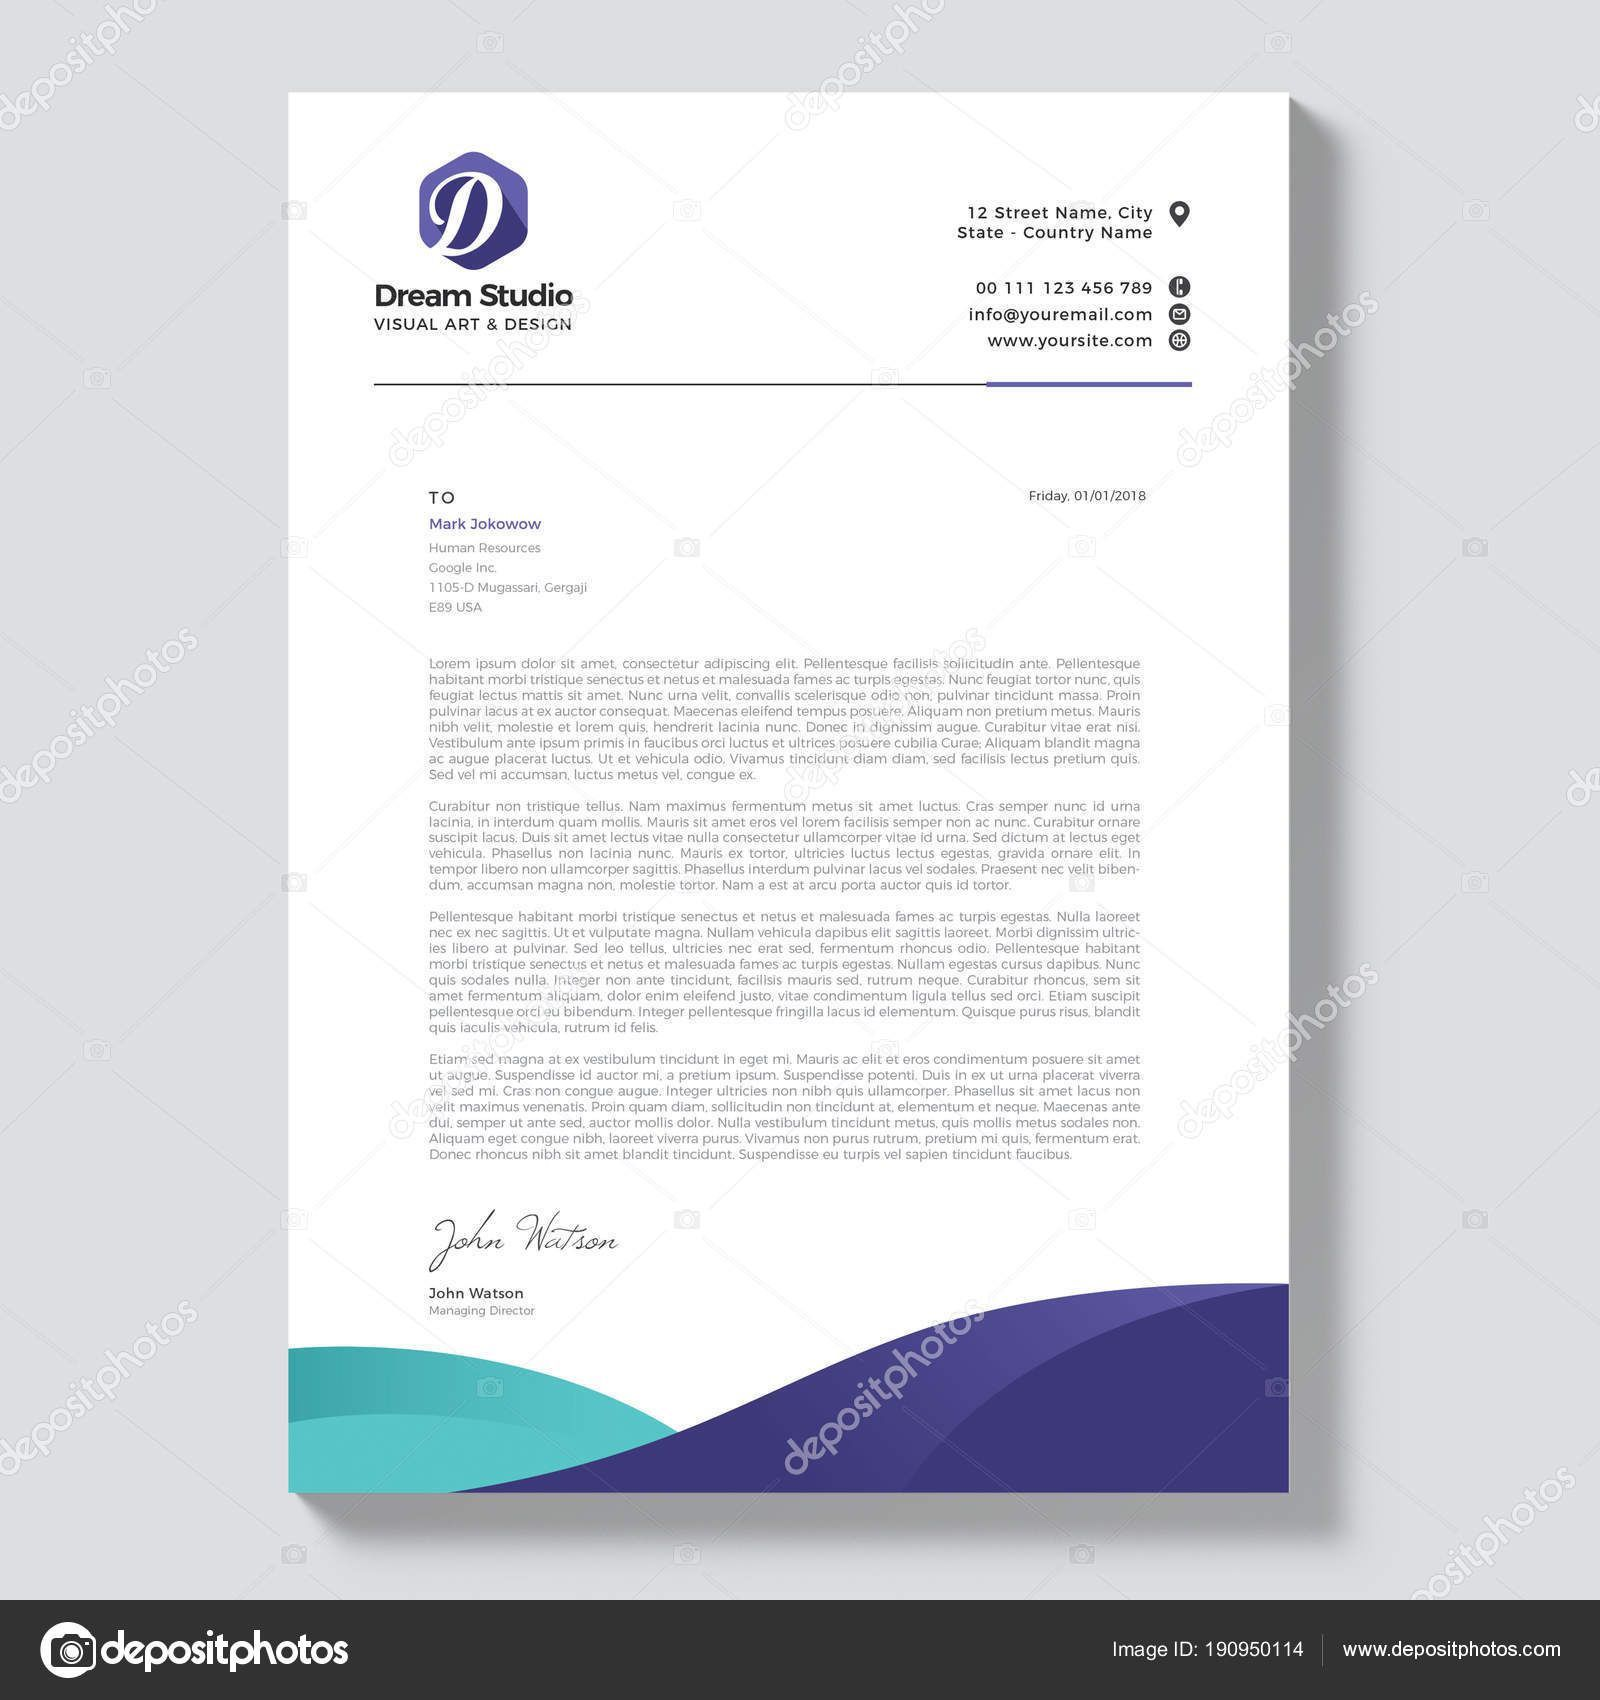 004 Astounding Sample Letterhead Template Free Download High Resolution  Professional Design In Word FormatFull